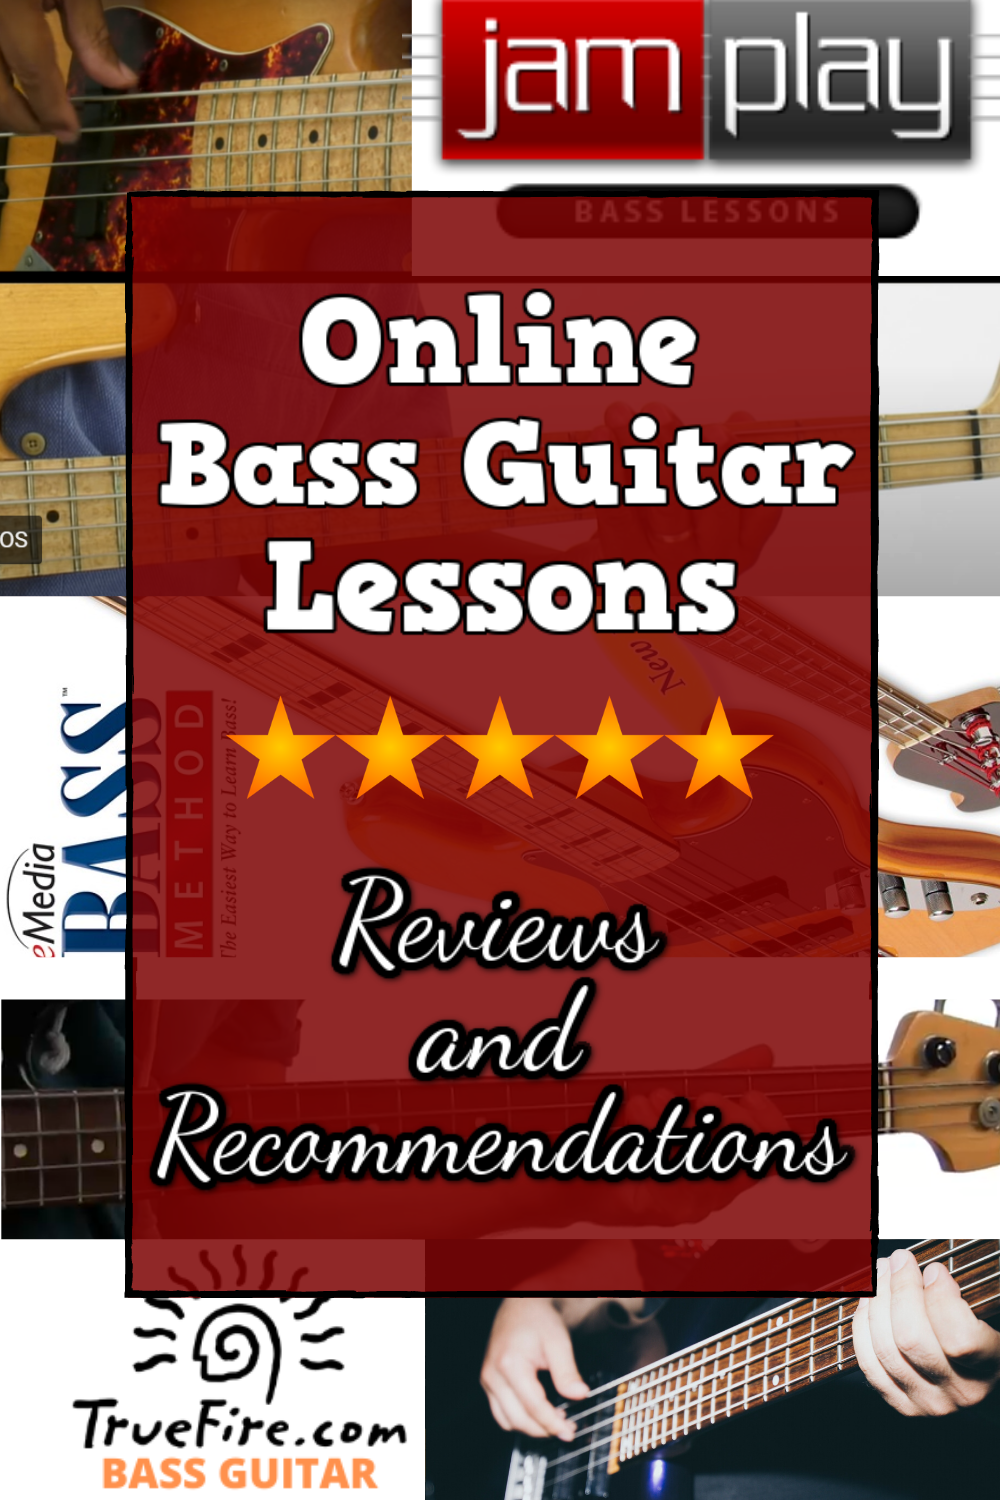 Online Bass Lessons Reviews and Recommendations